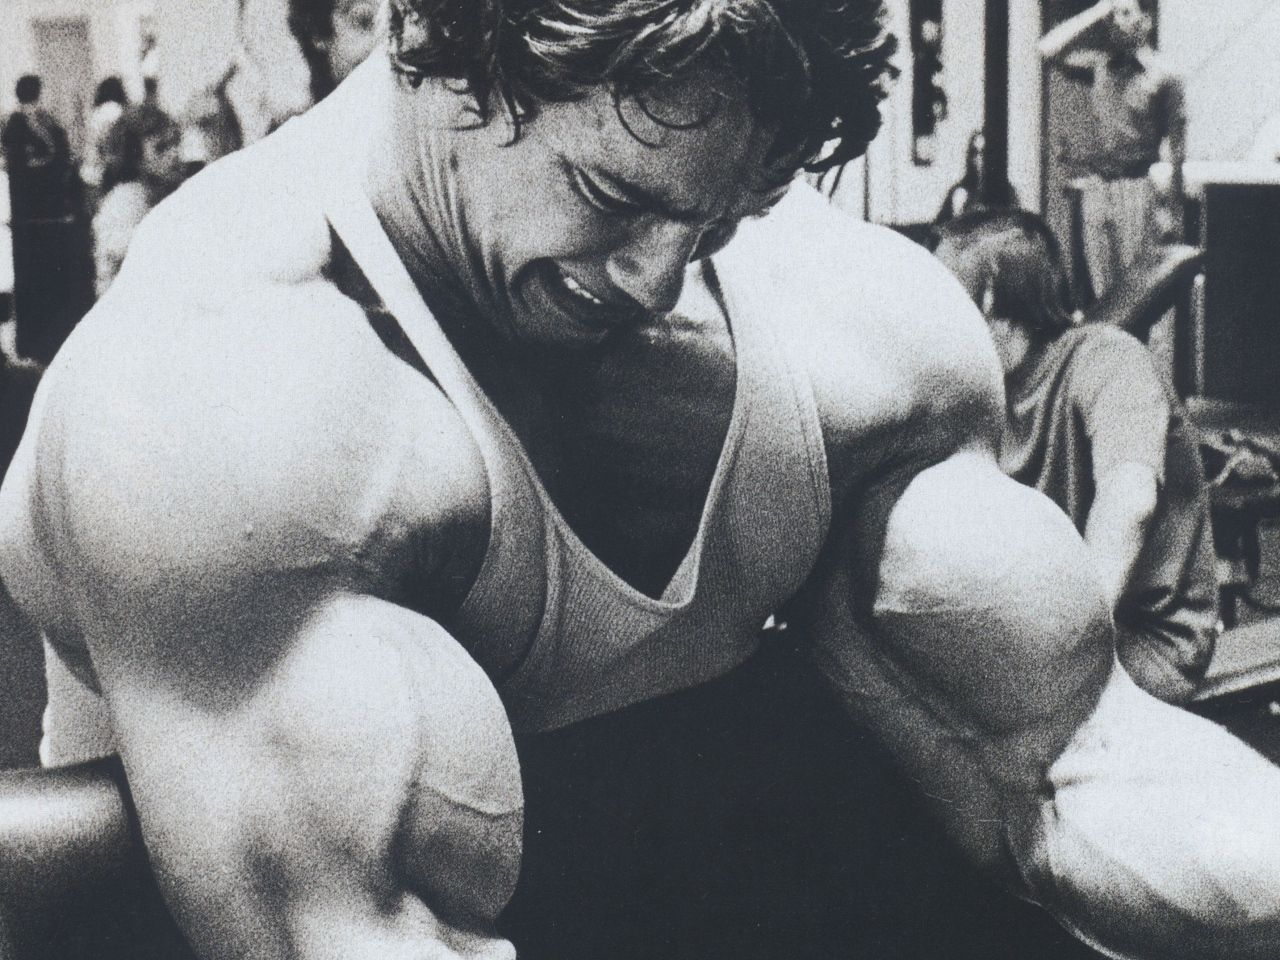 arnold_schwarzenegger_actor_producer_director_young_bodybuilding_74040_1280x960-jpg.88 | Второй год. Четвёртое полугодие